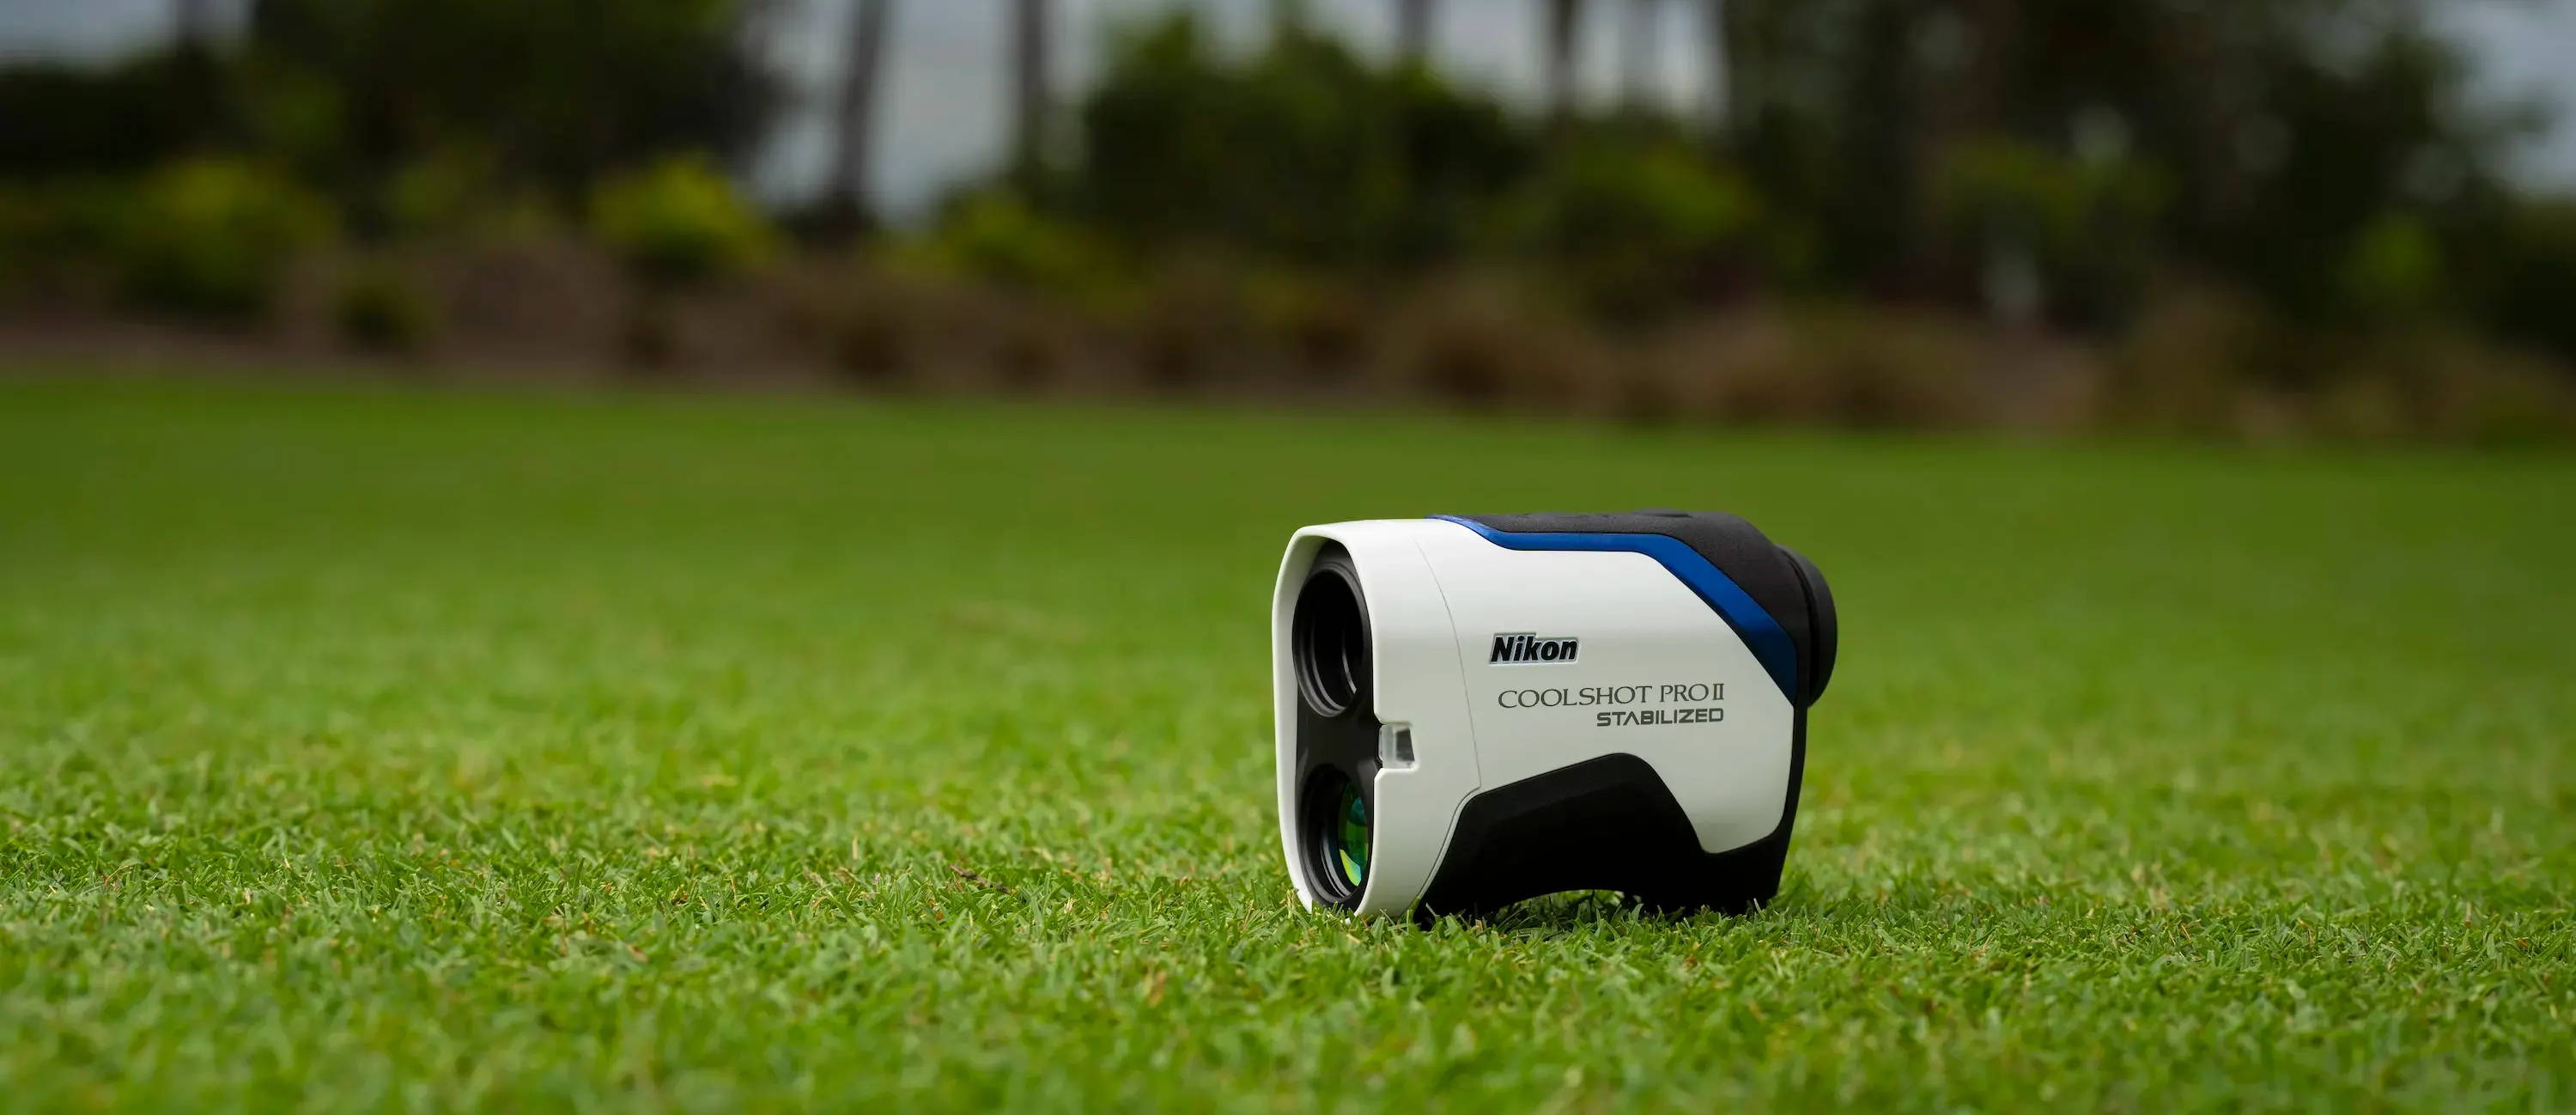 The Nikon COOLSHOT PROII Stabilized Rangefinder on the Golf Course